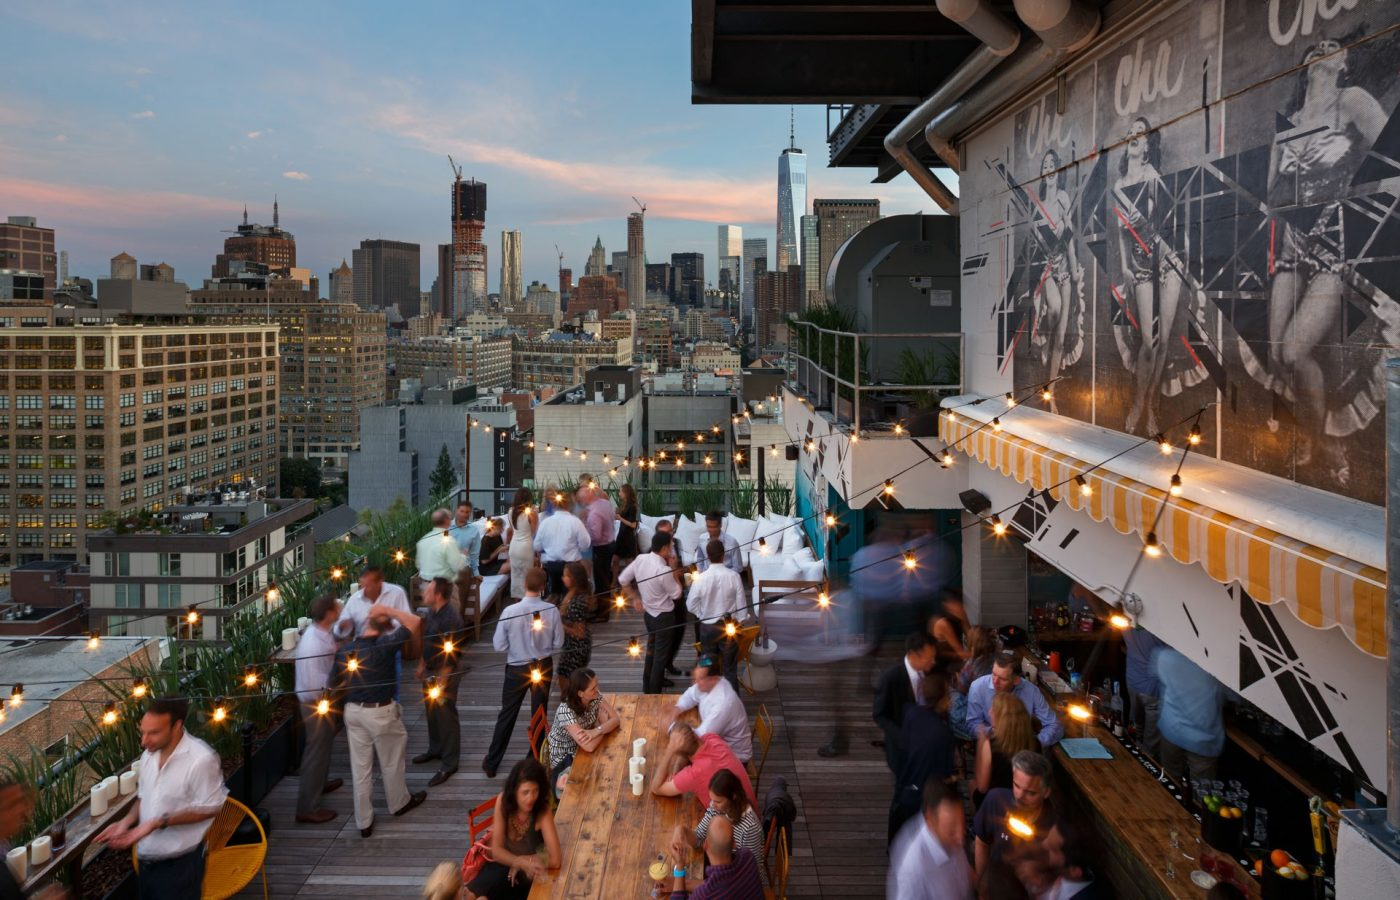 Rooftopbars in New York